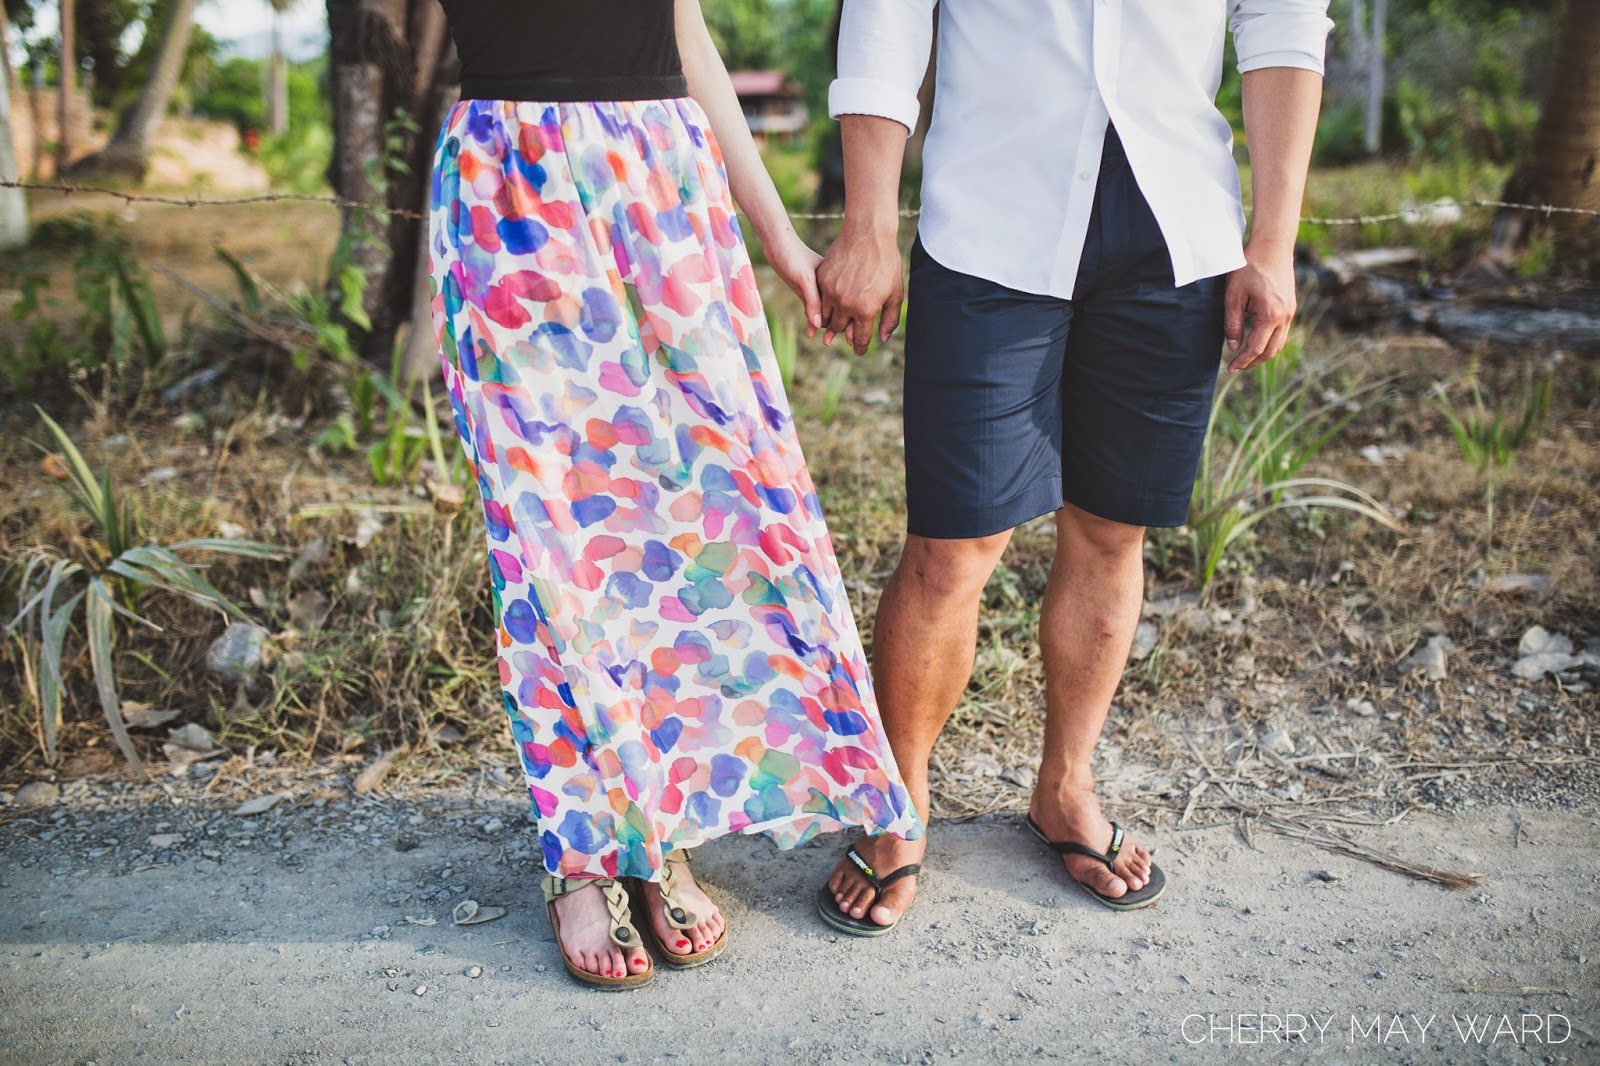 colourful skirt, engagement session outfit, fun colours, happy couple, holding hands, Koh Samui,